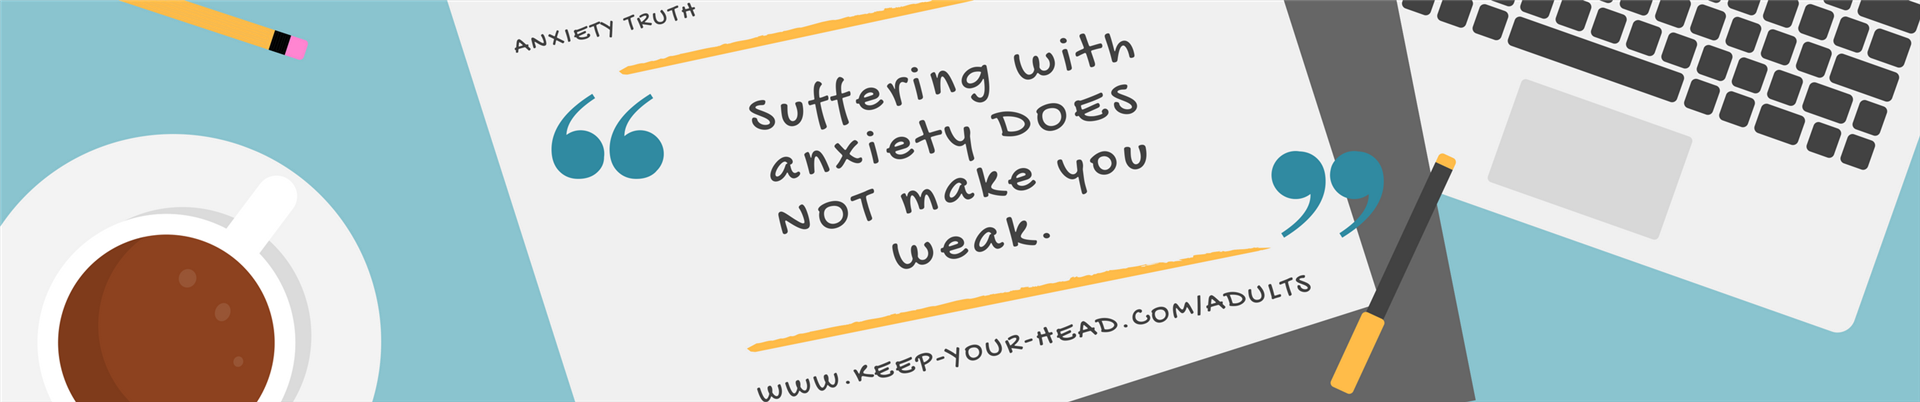 Anxiety does not make you weak Blog Post image